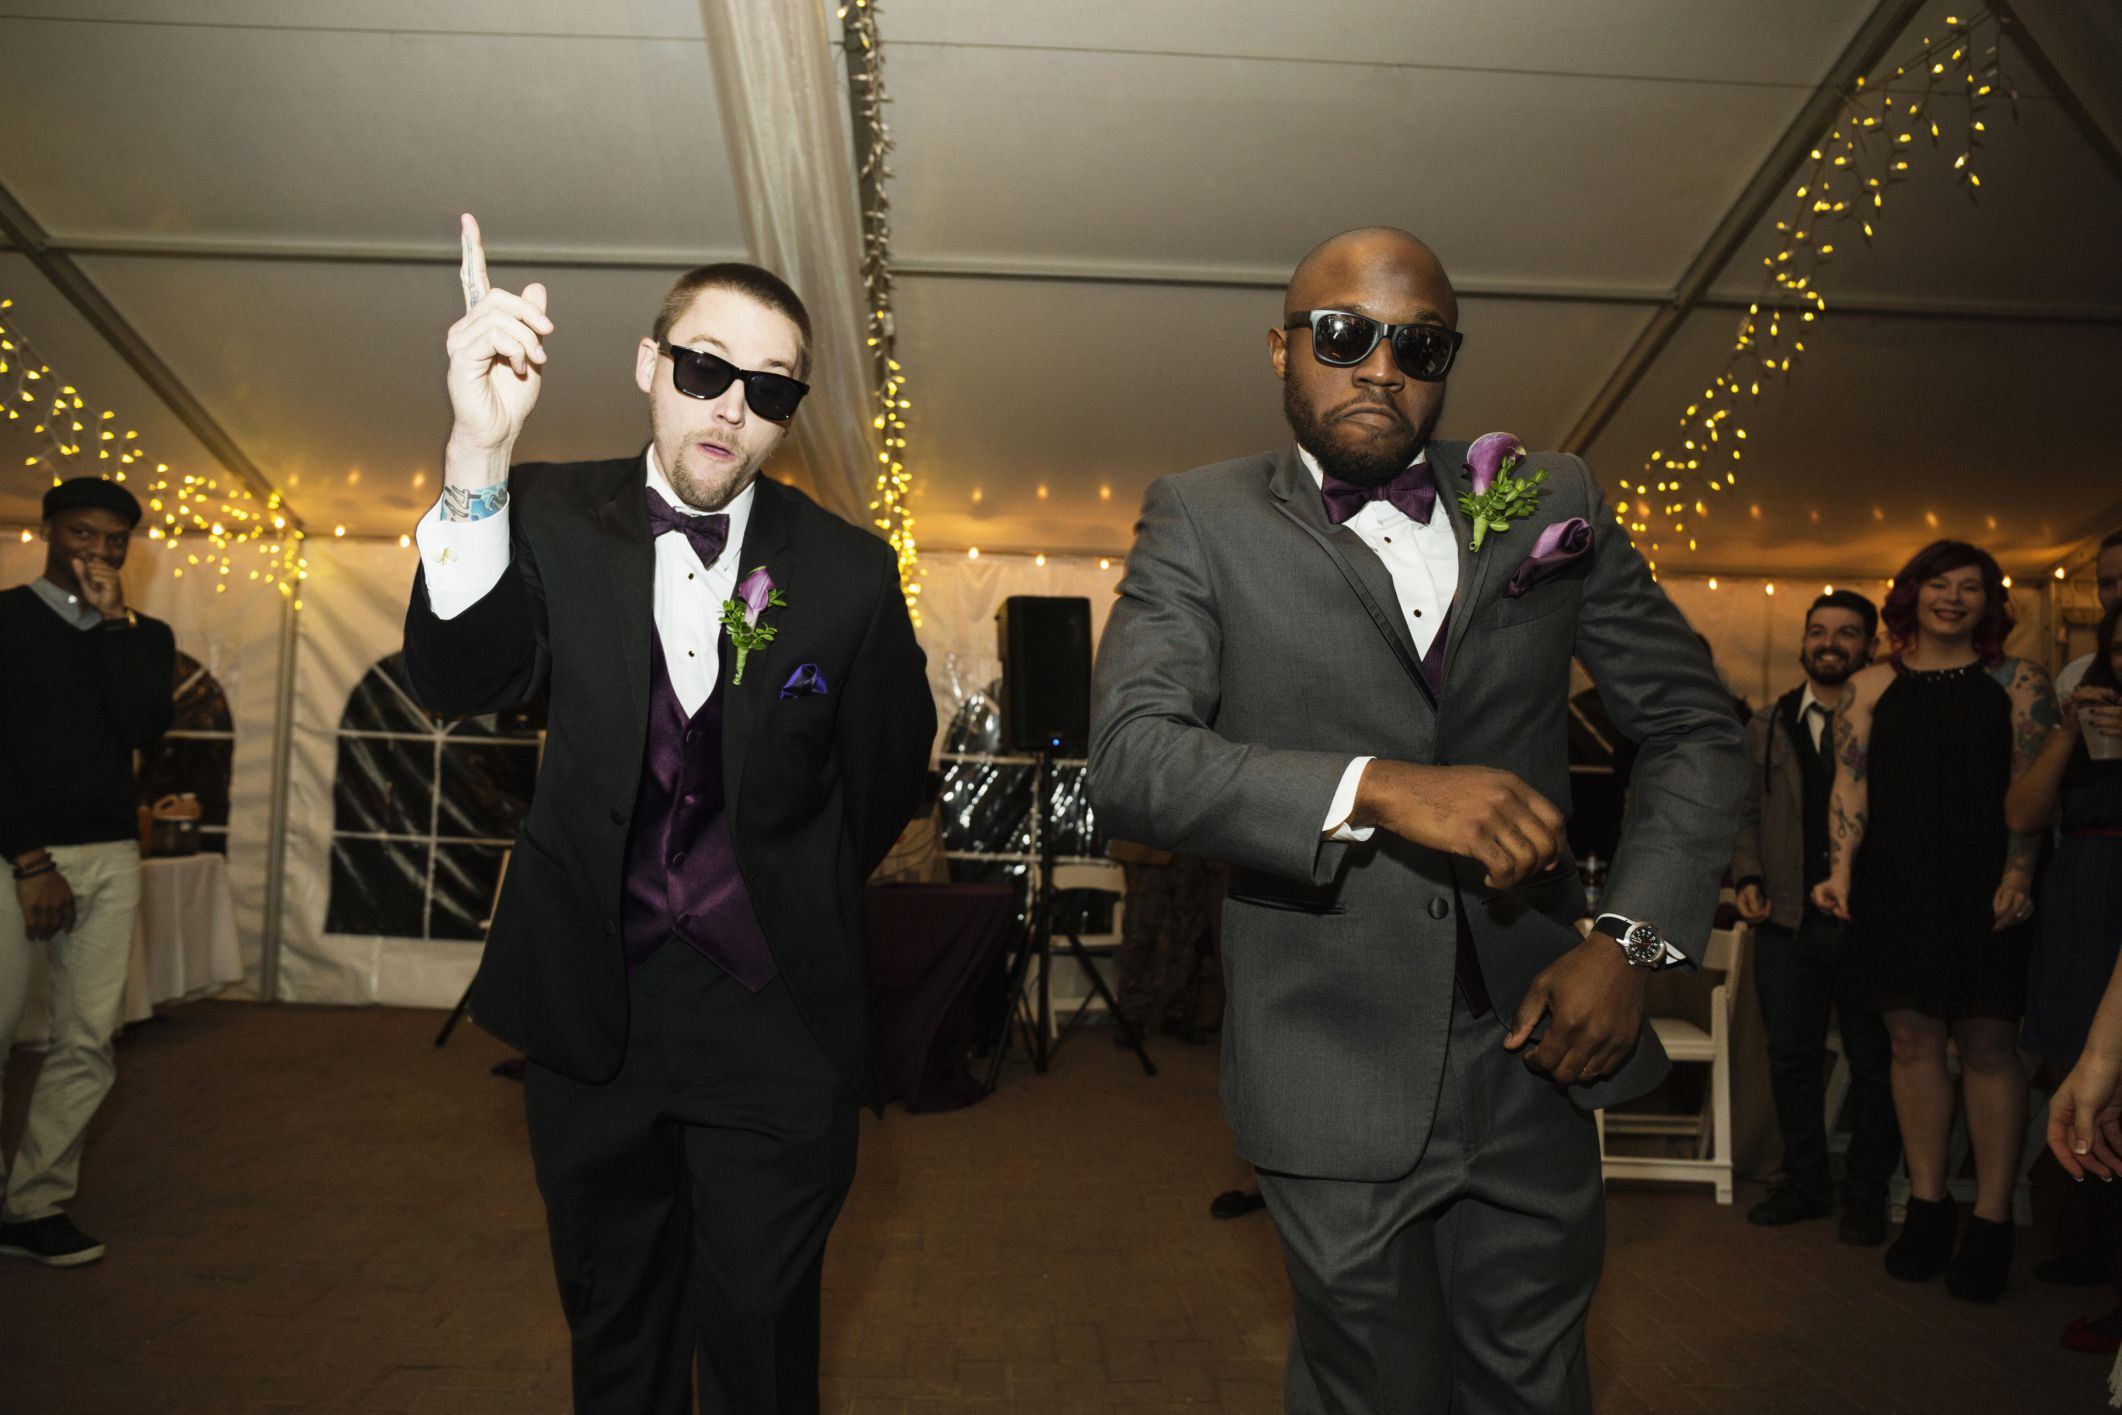 Wedding Music That Will Get Your Guests Dancing